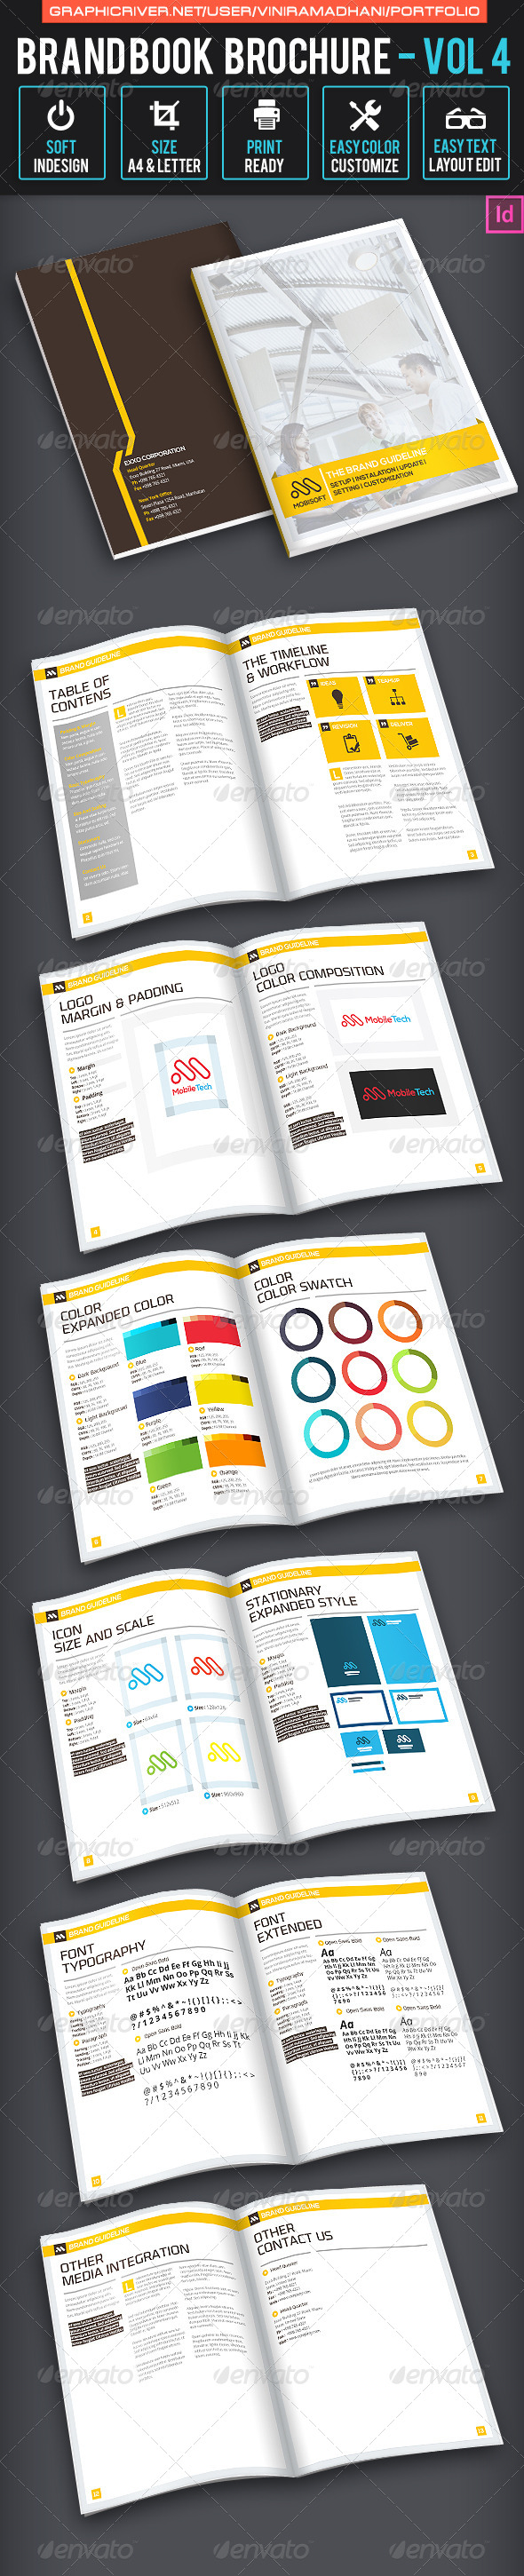 Brandbook Brochure | Volume 4 - Informational Brochures